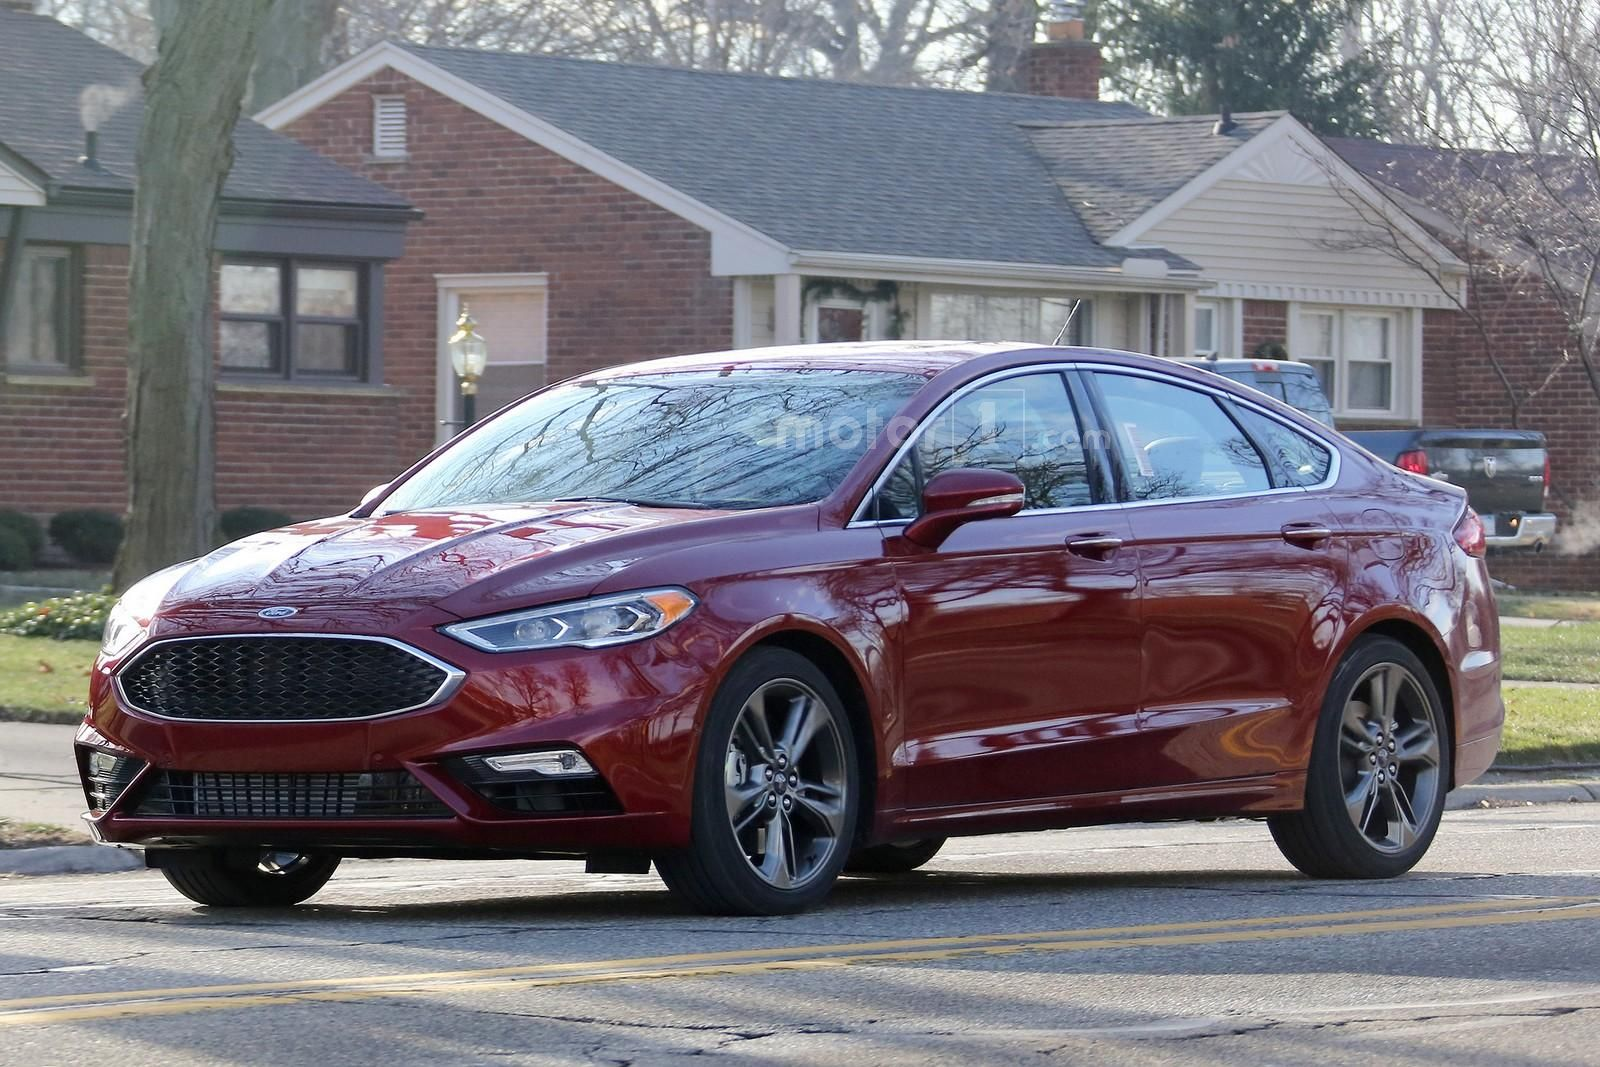 Spied: 2017 Ford Fusion MCE Caught Undisguised Ahead of Detroit Debut ...